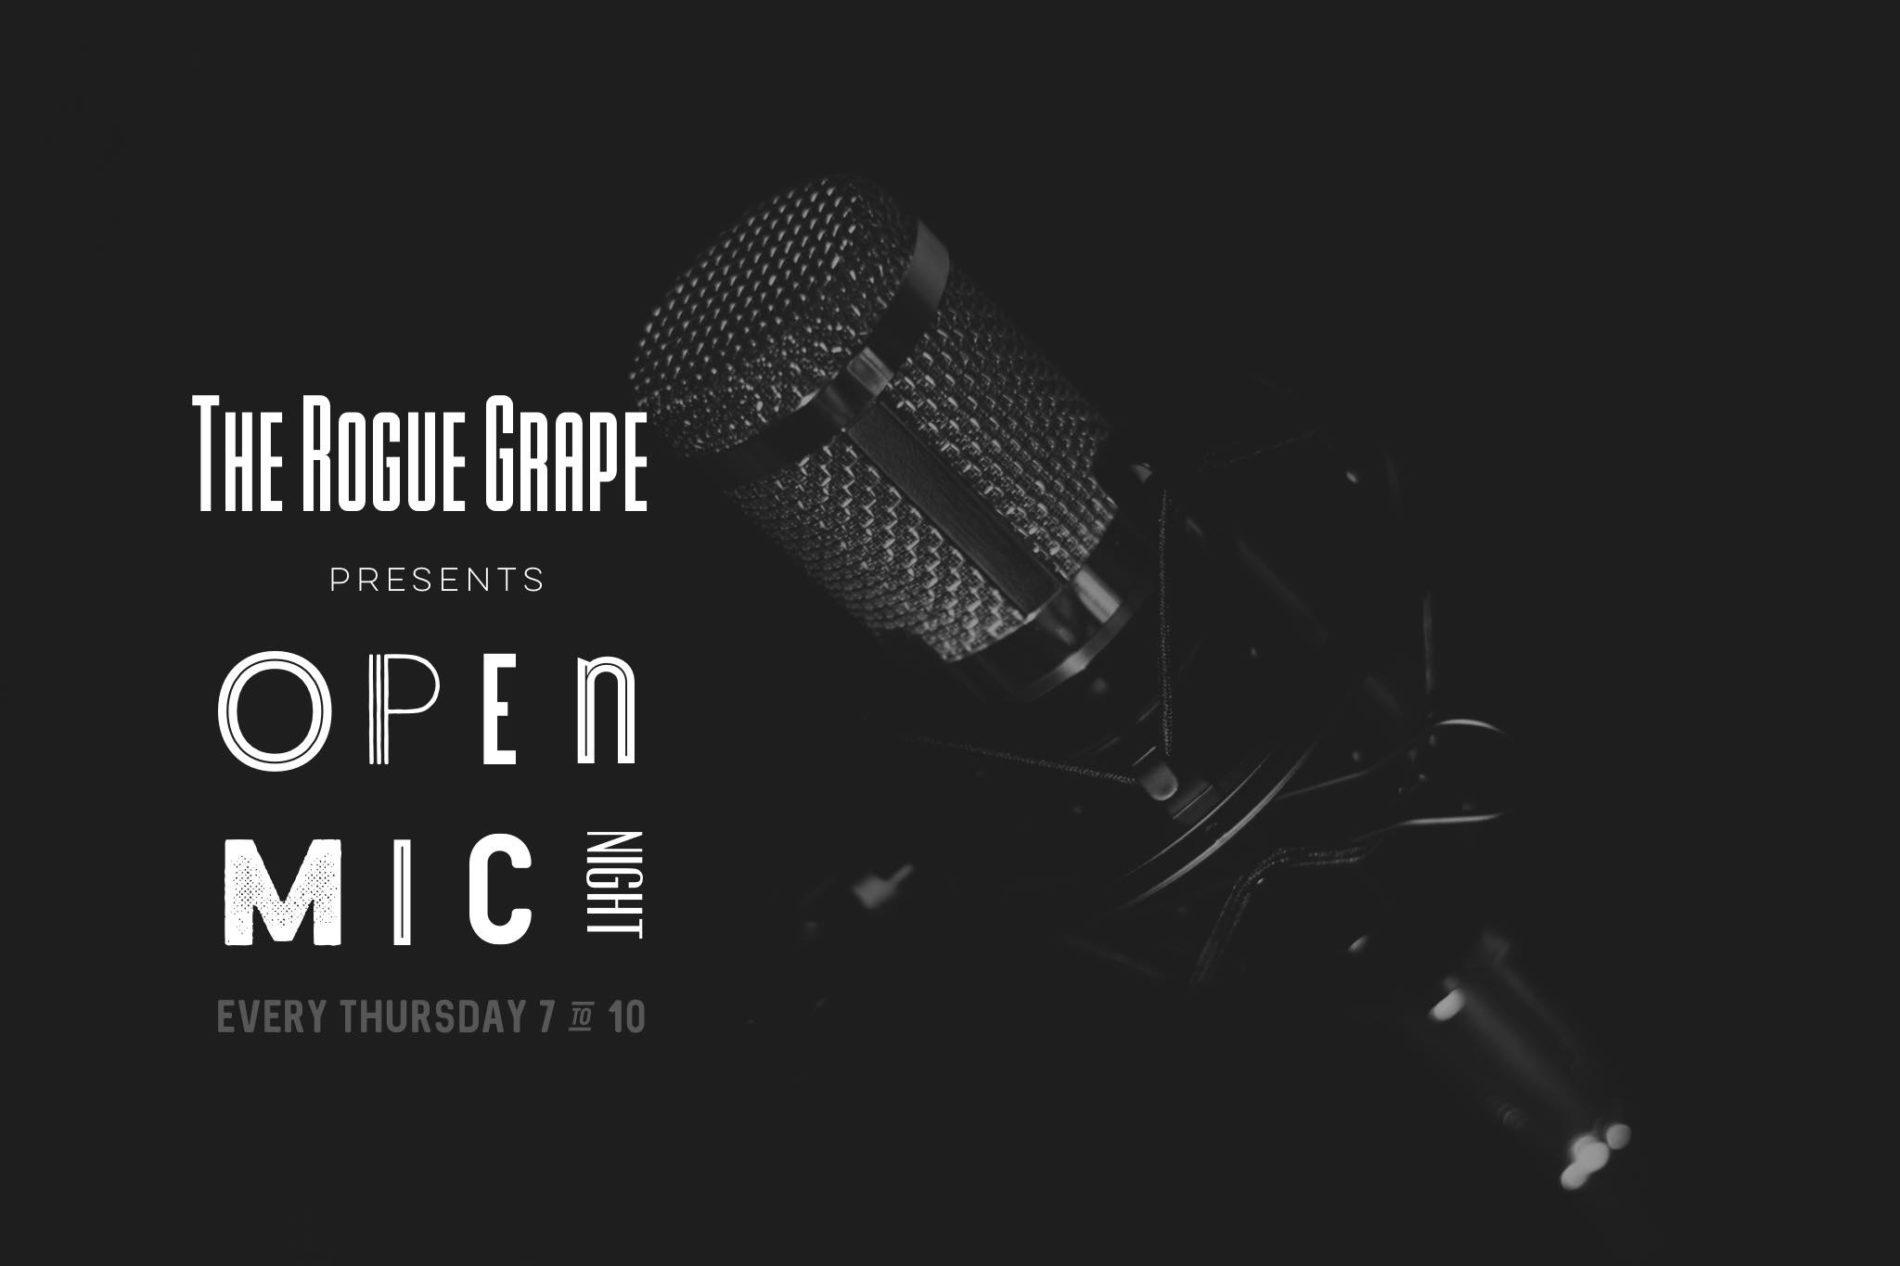 BD8EE811 EA1E 4966 8D73 268368A59F6D - Open Mic Night at The Rogue Grape